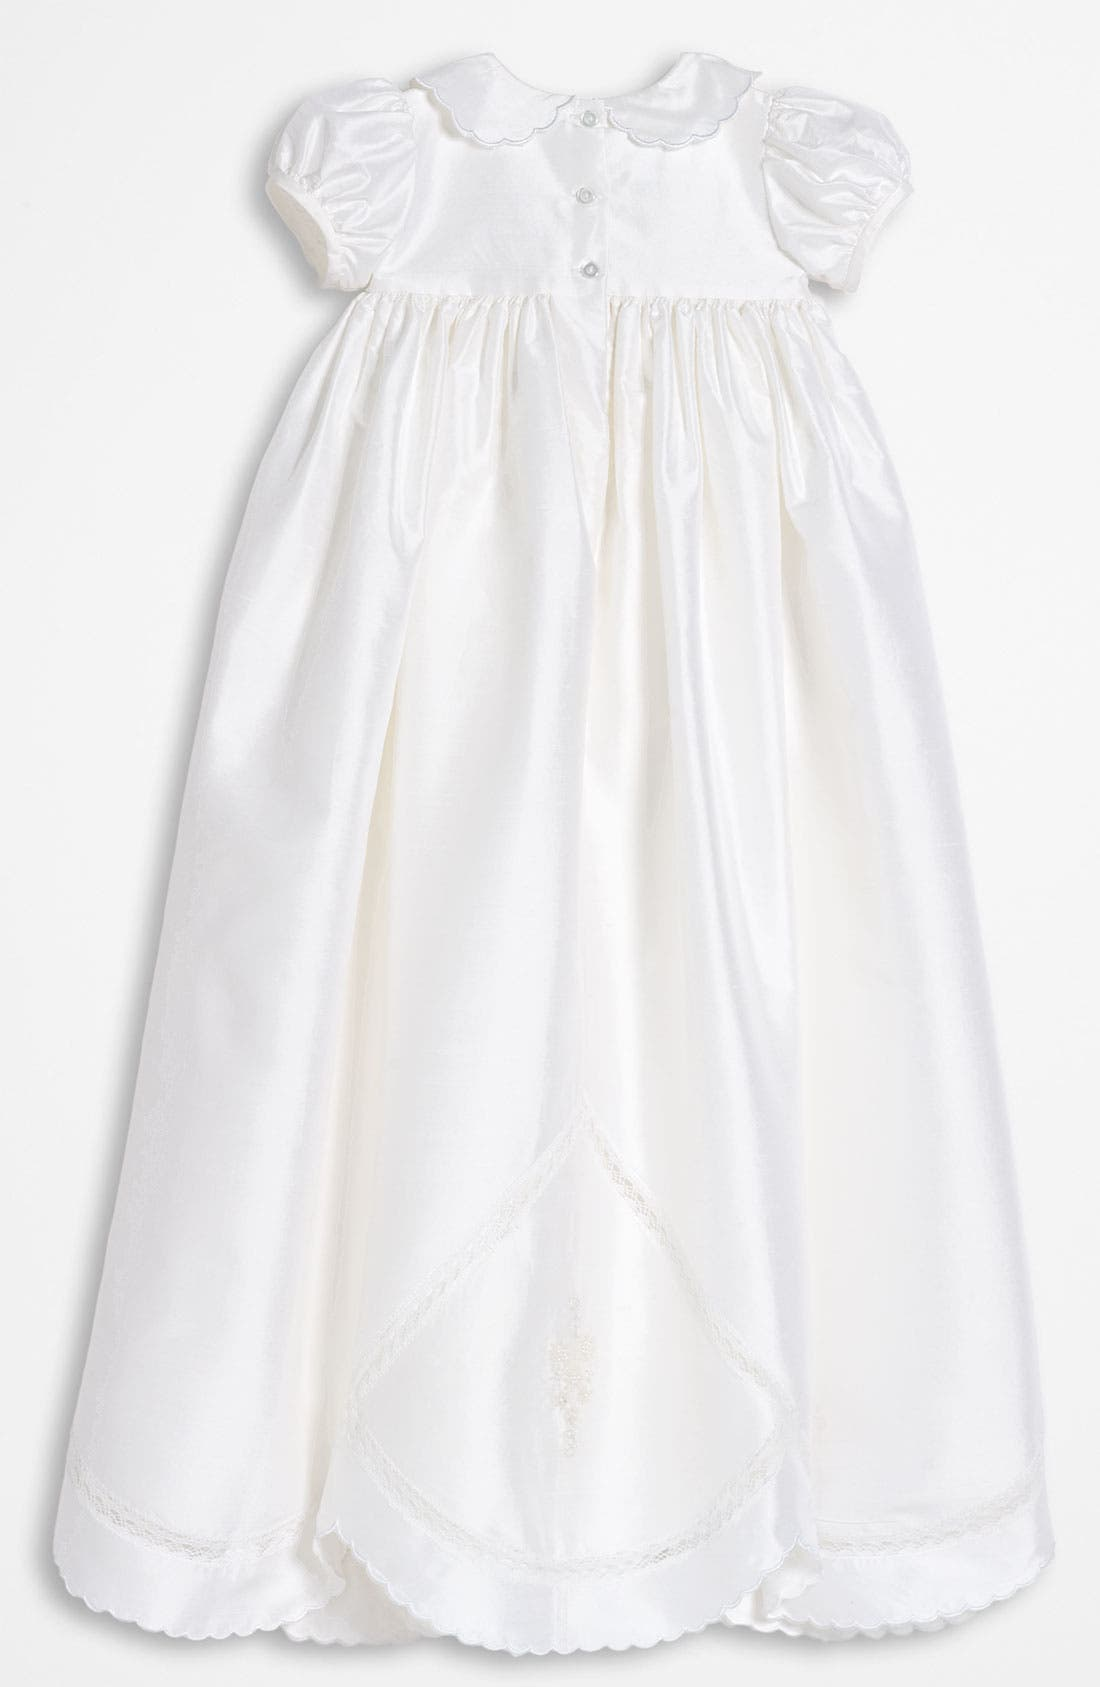 Dupioni Silk Christening Gown,                             Alternate thumbnail 2, color,                             WHITE